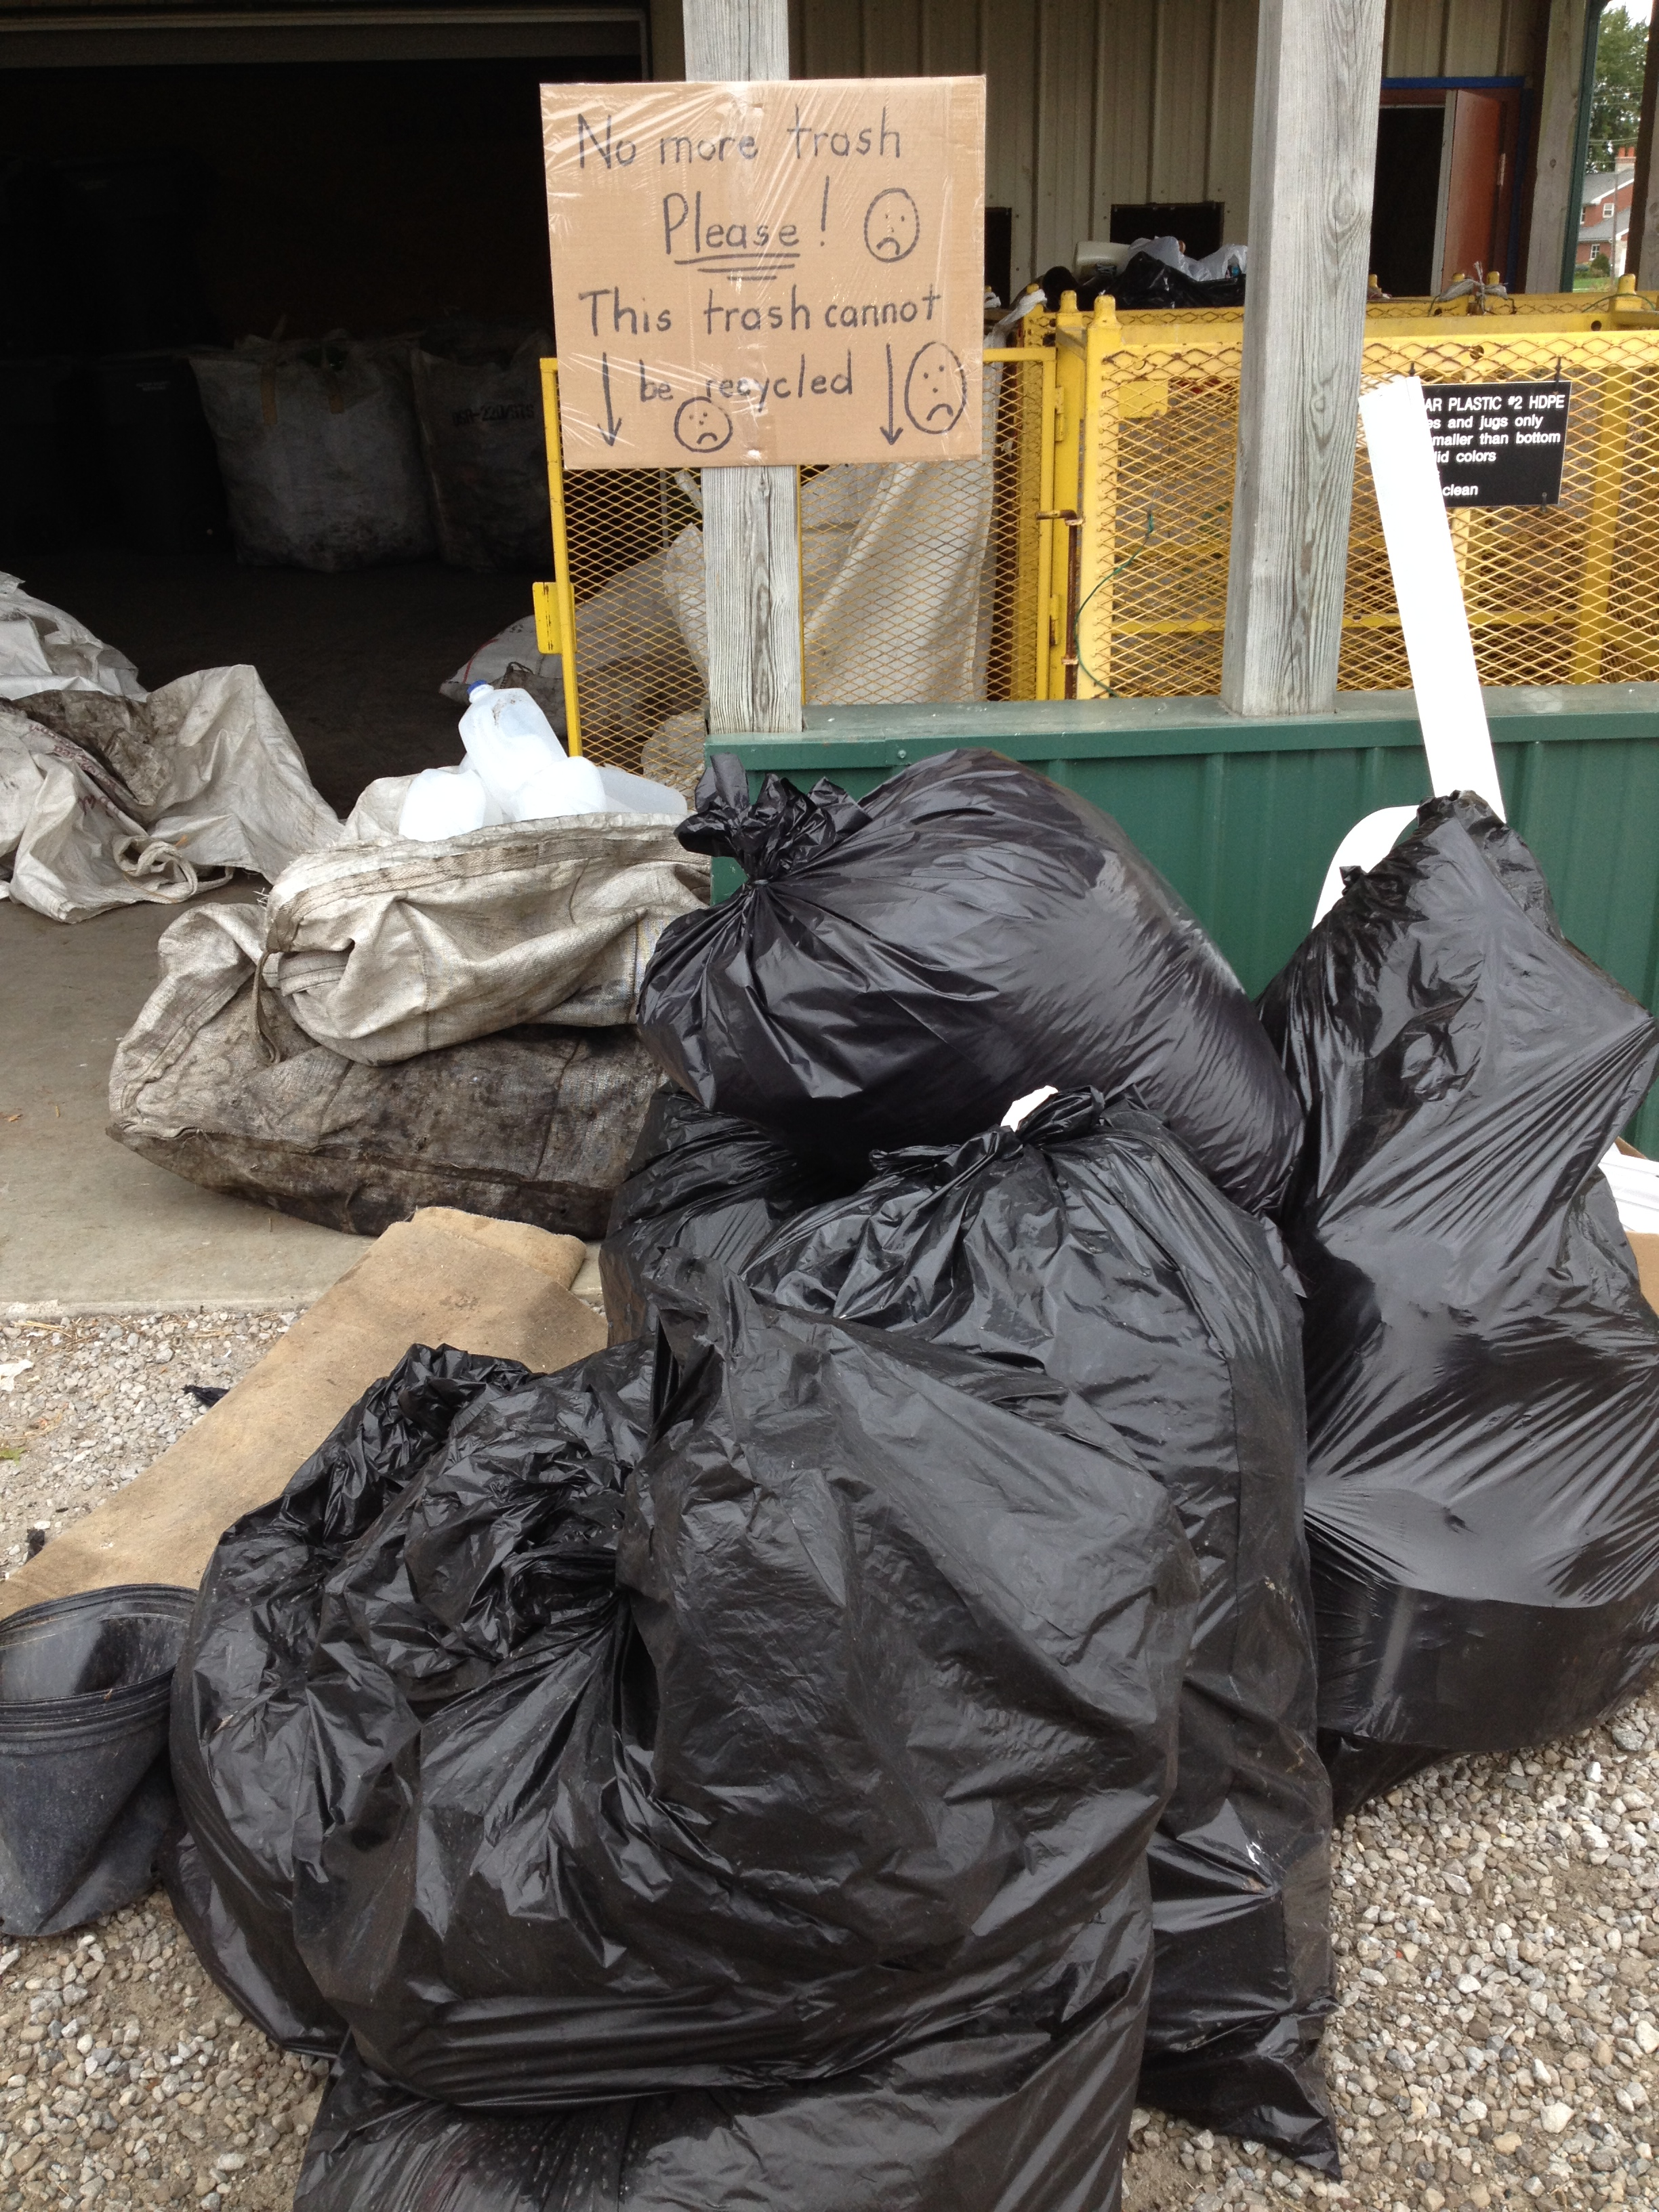 A photo of where NOT to put your trash.